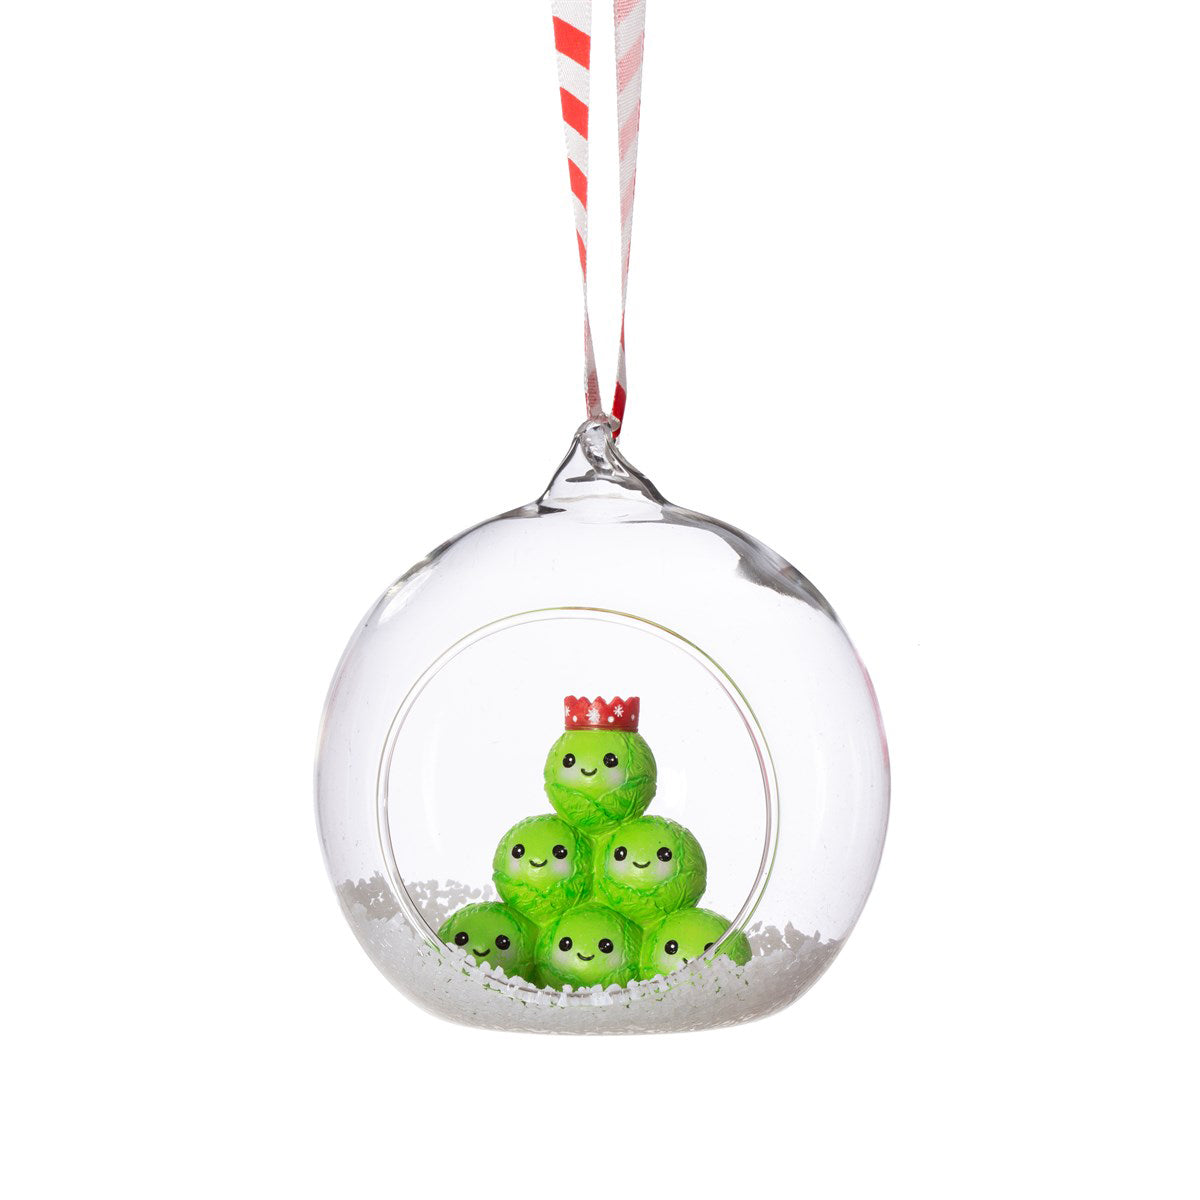 RJB Stone Brussel Sprouts Figurine Bauble